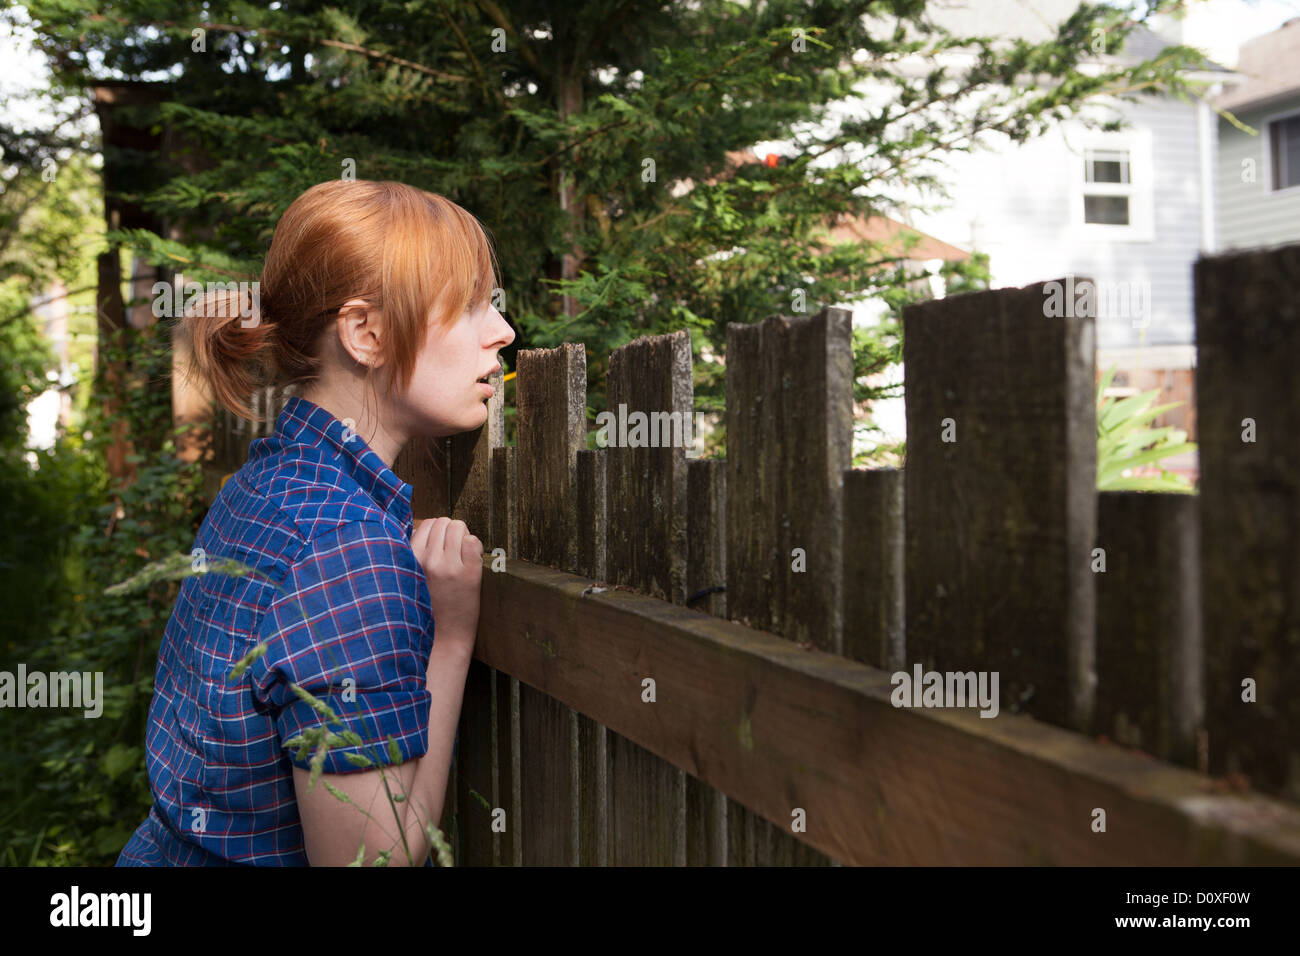 Young woman looking over fence to neighbor's yard - Stock Image